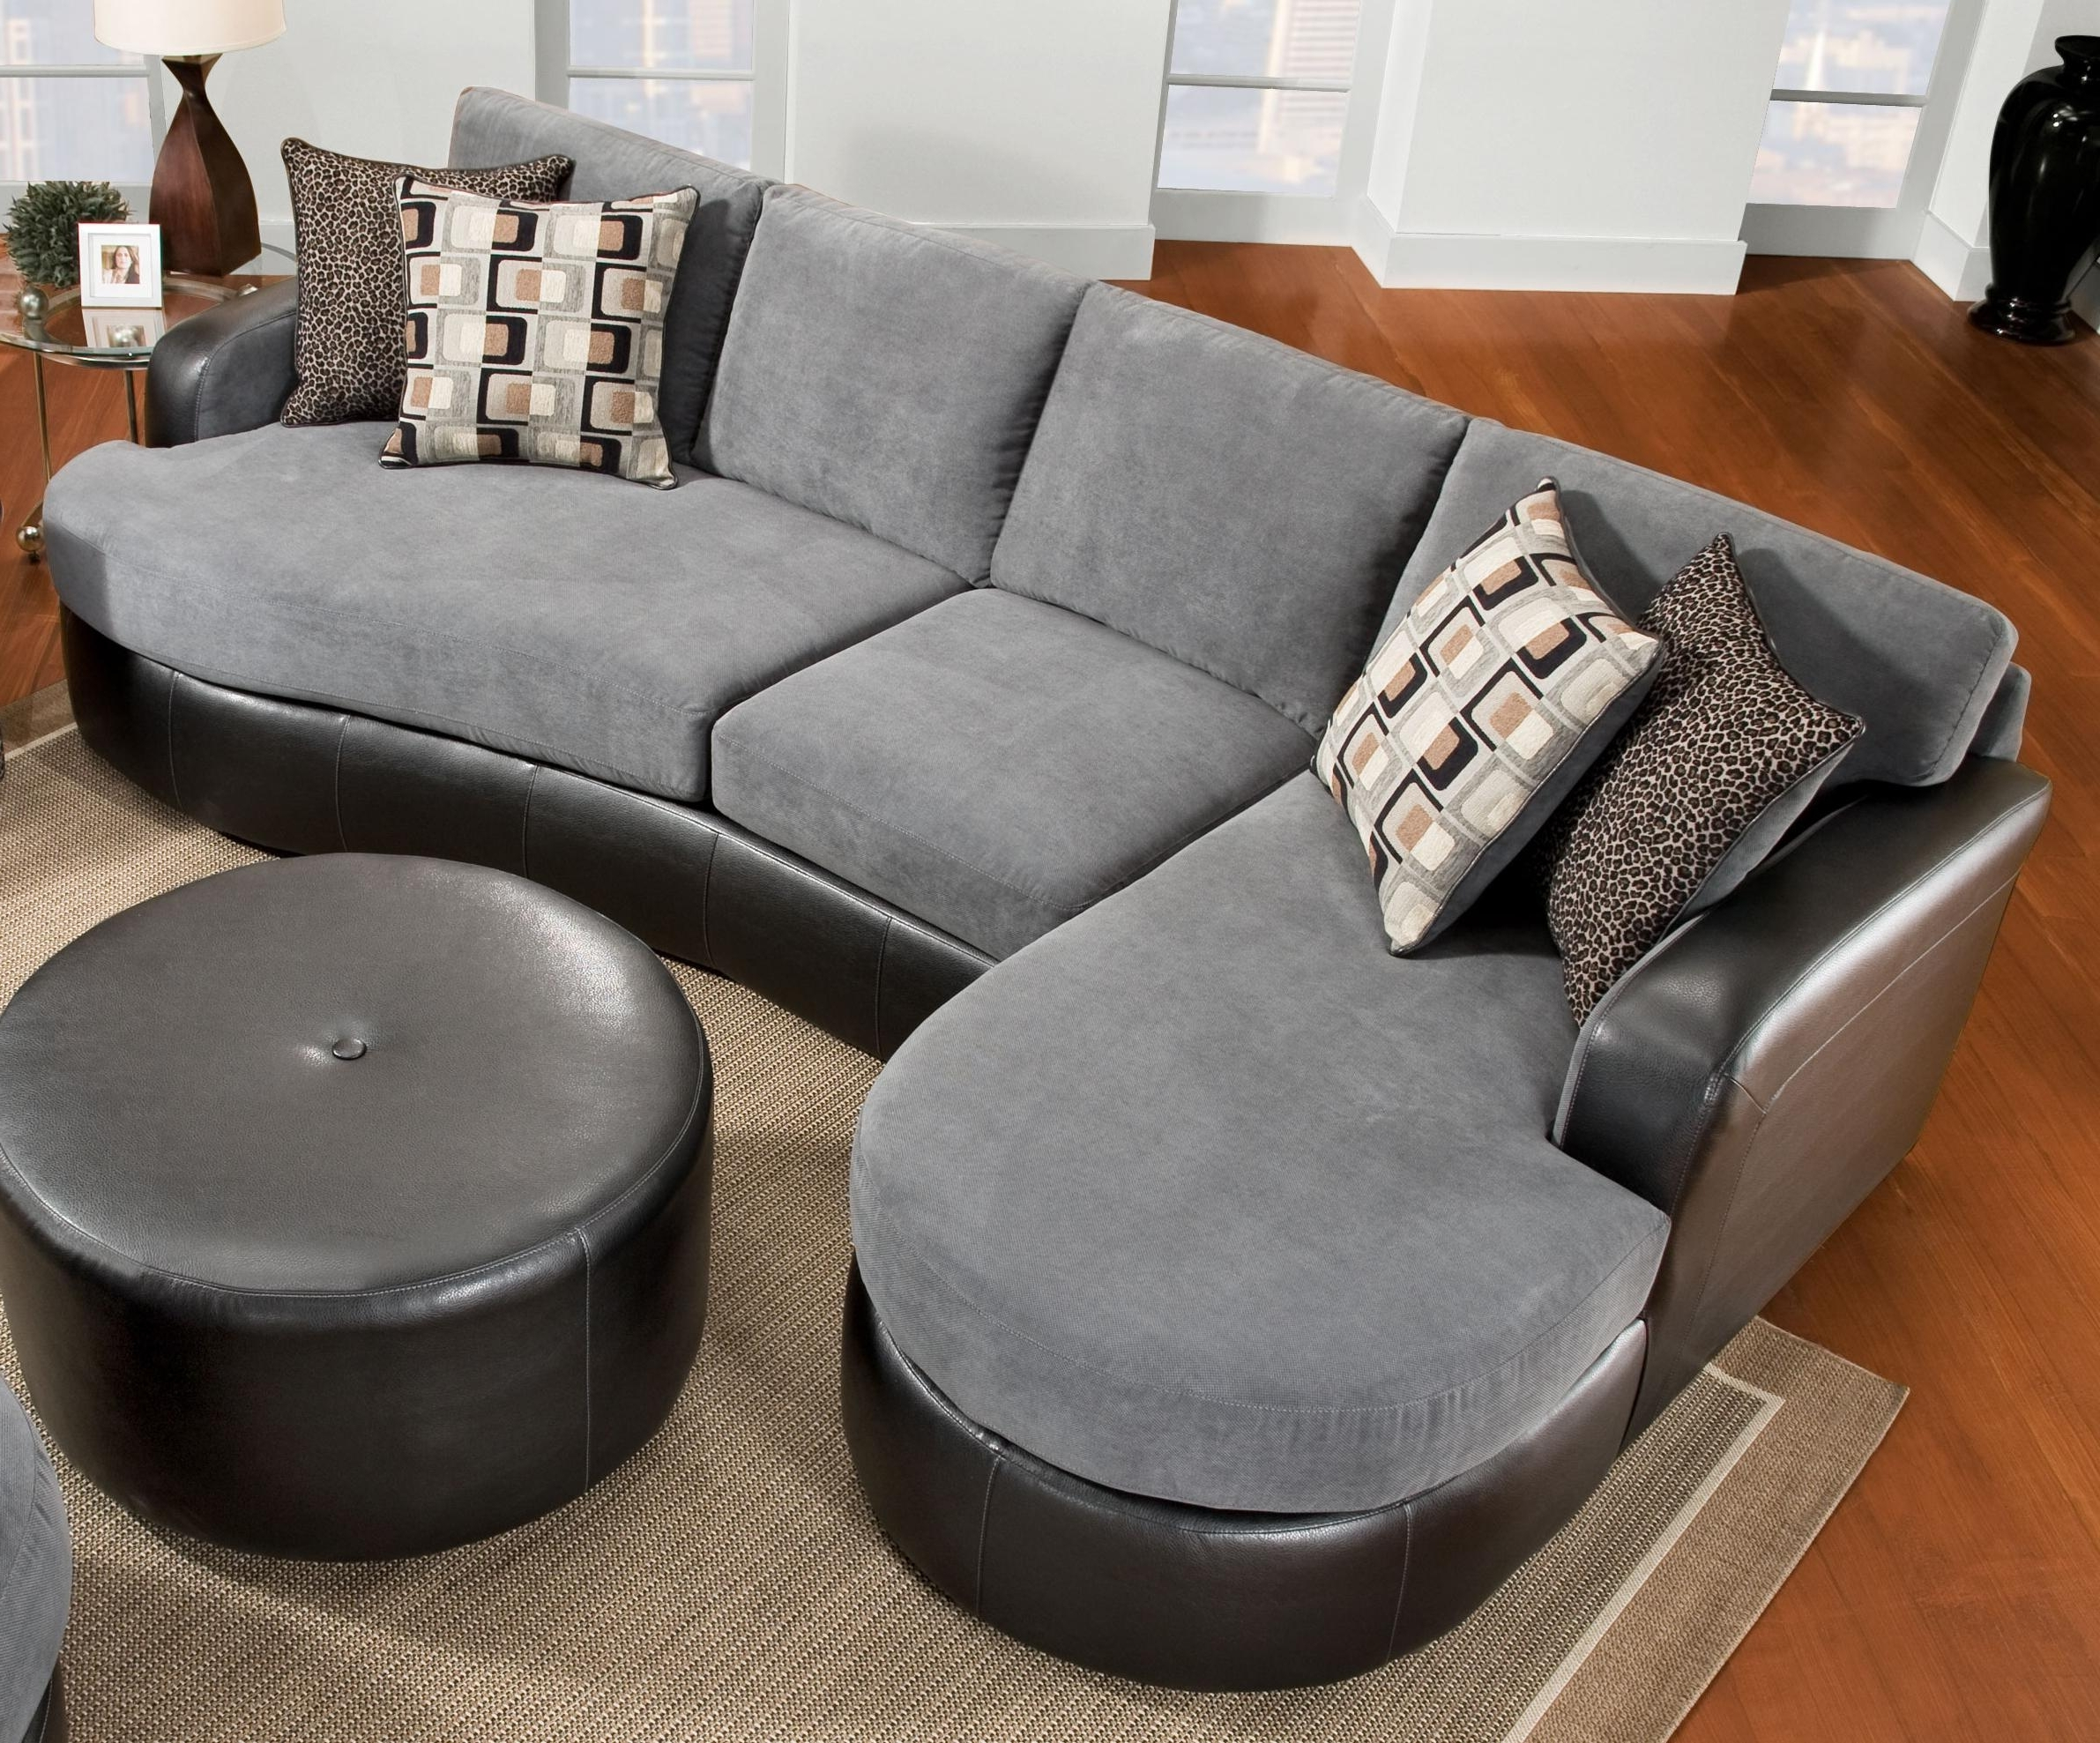 2018 Home Design : Dazzling Best Modern Fabric Sectional Sofas With Throughout Leather Sectionals With Chaise And Ottoman (View 10 of 15)